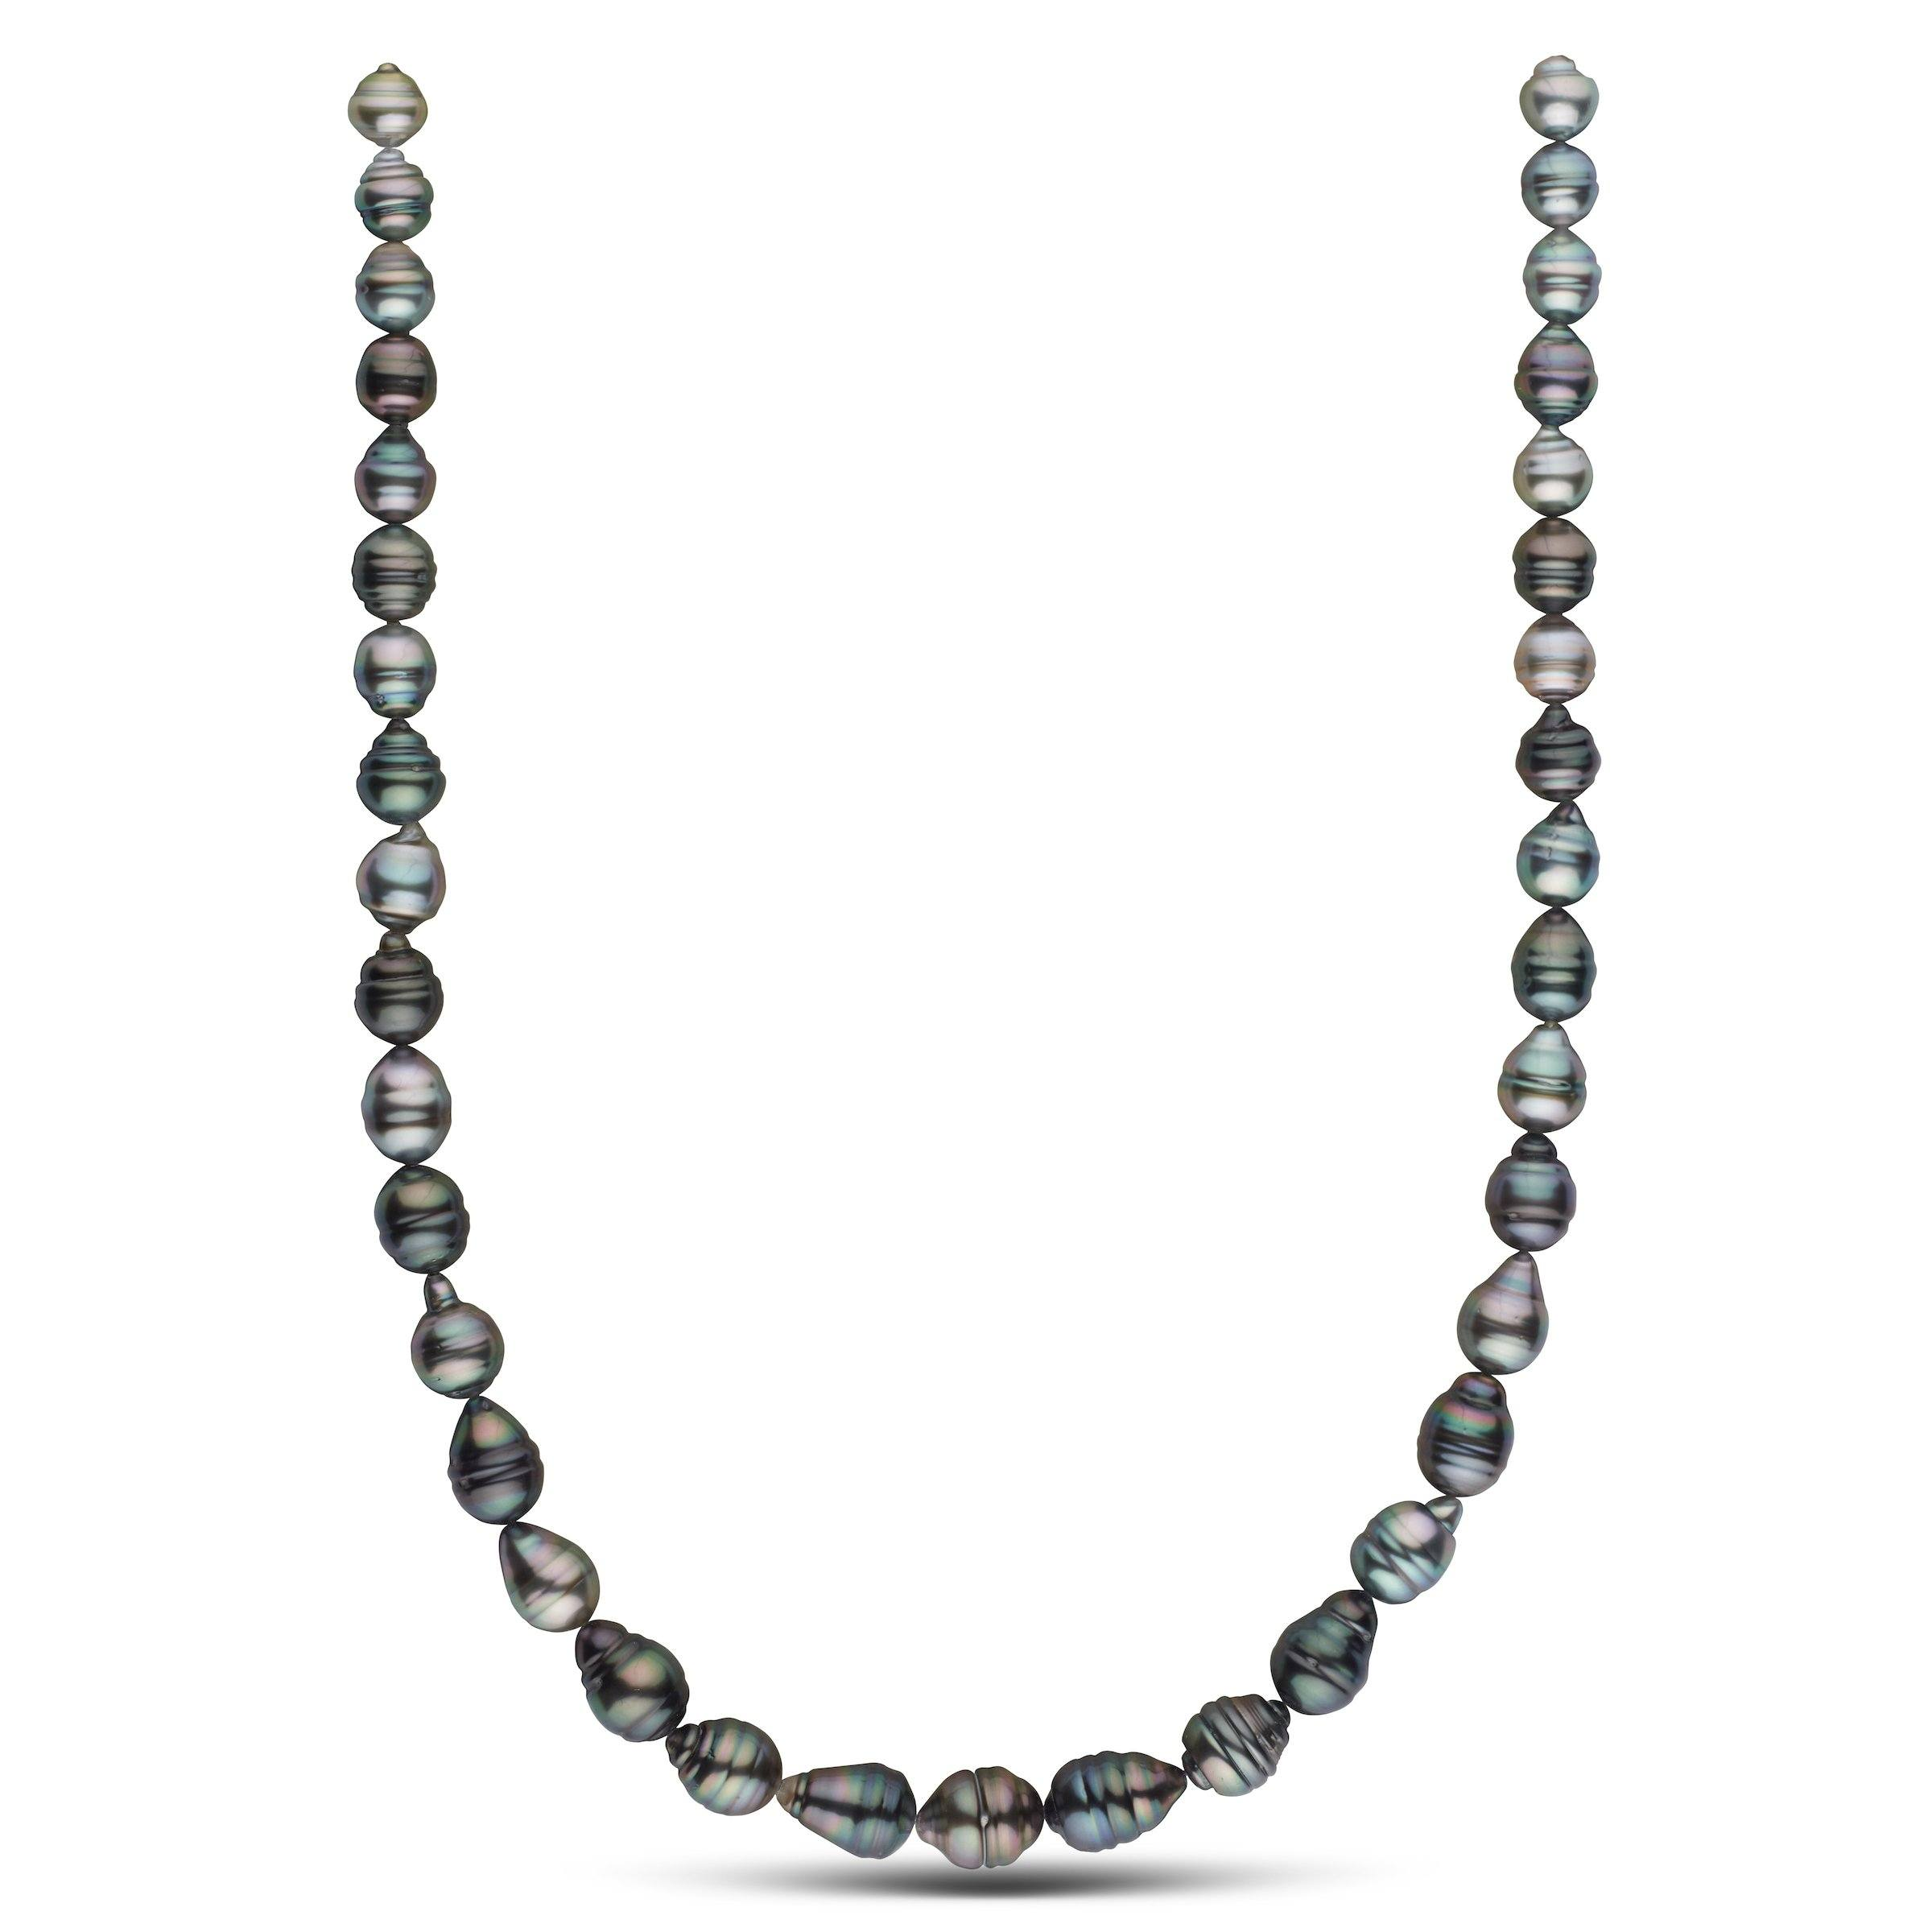 8.4-10.5 mm AA+/AAA Tahitian Baroque Pearl Necklace